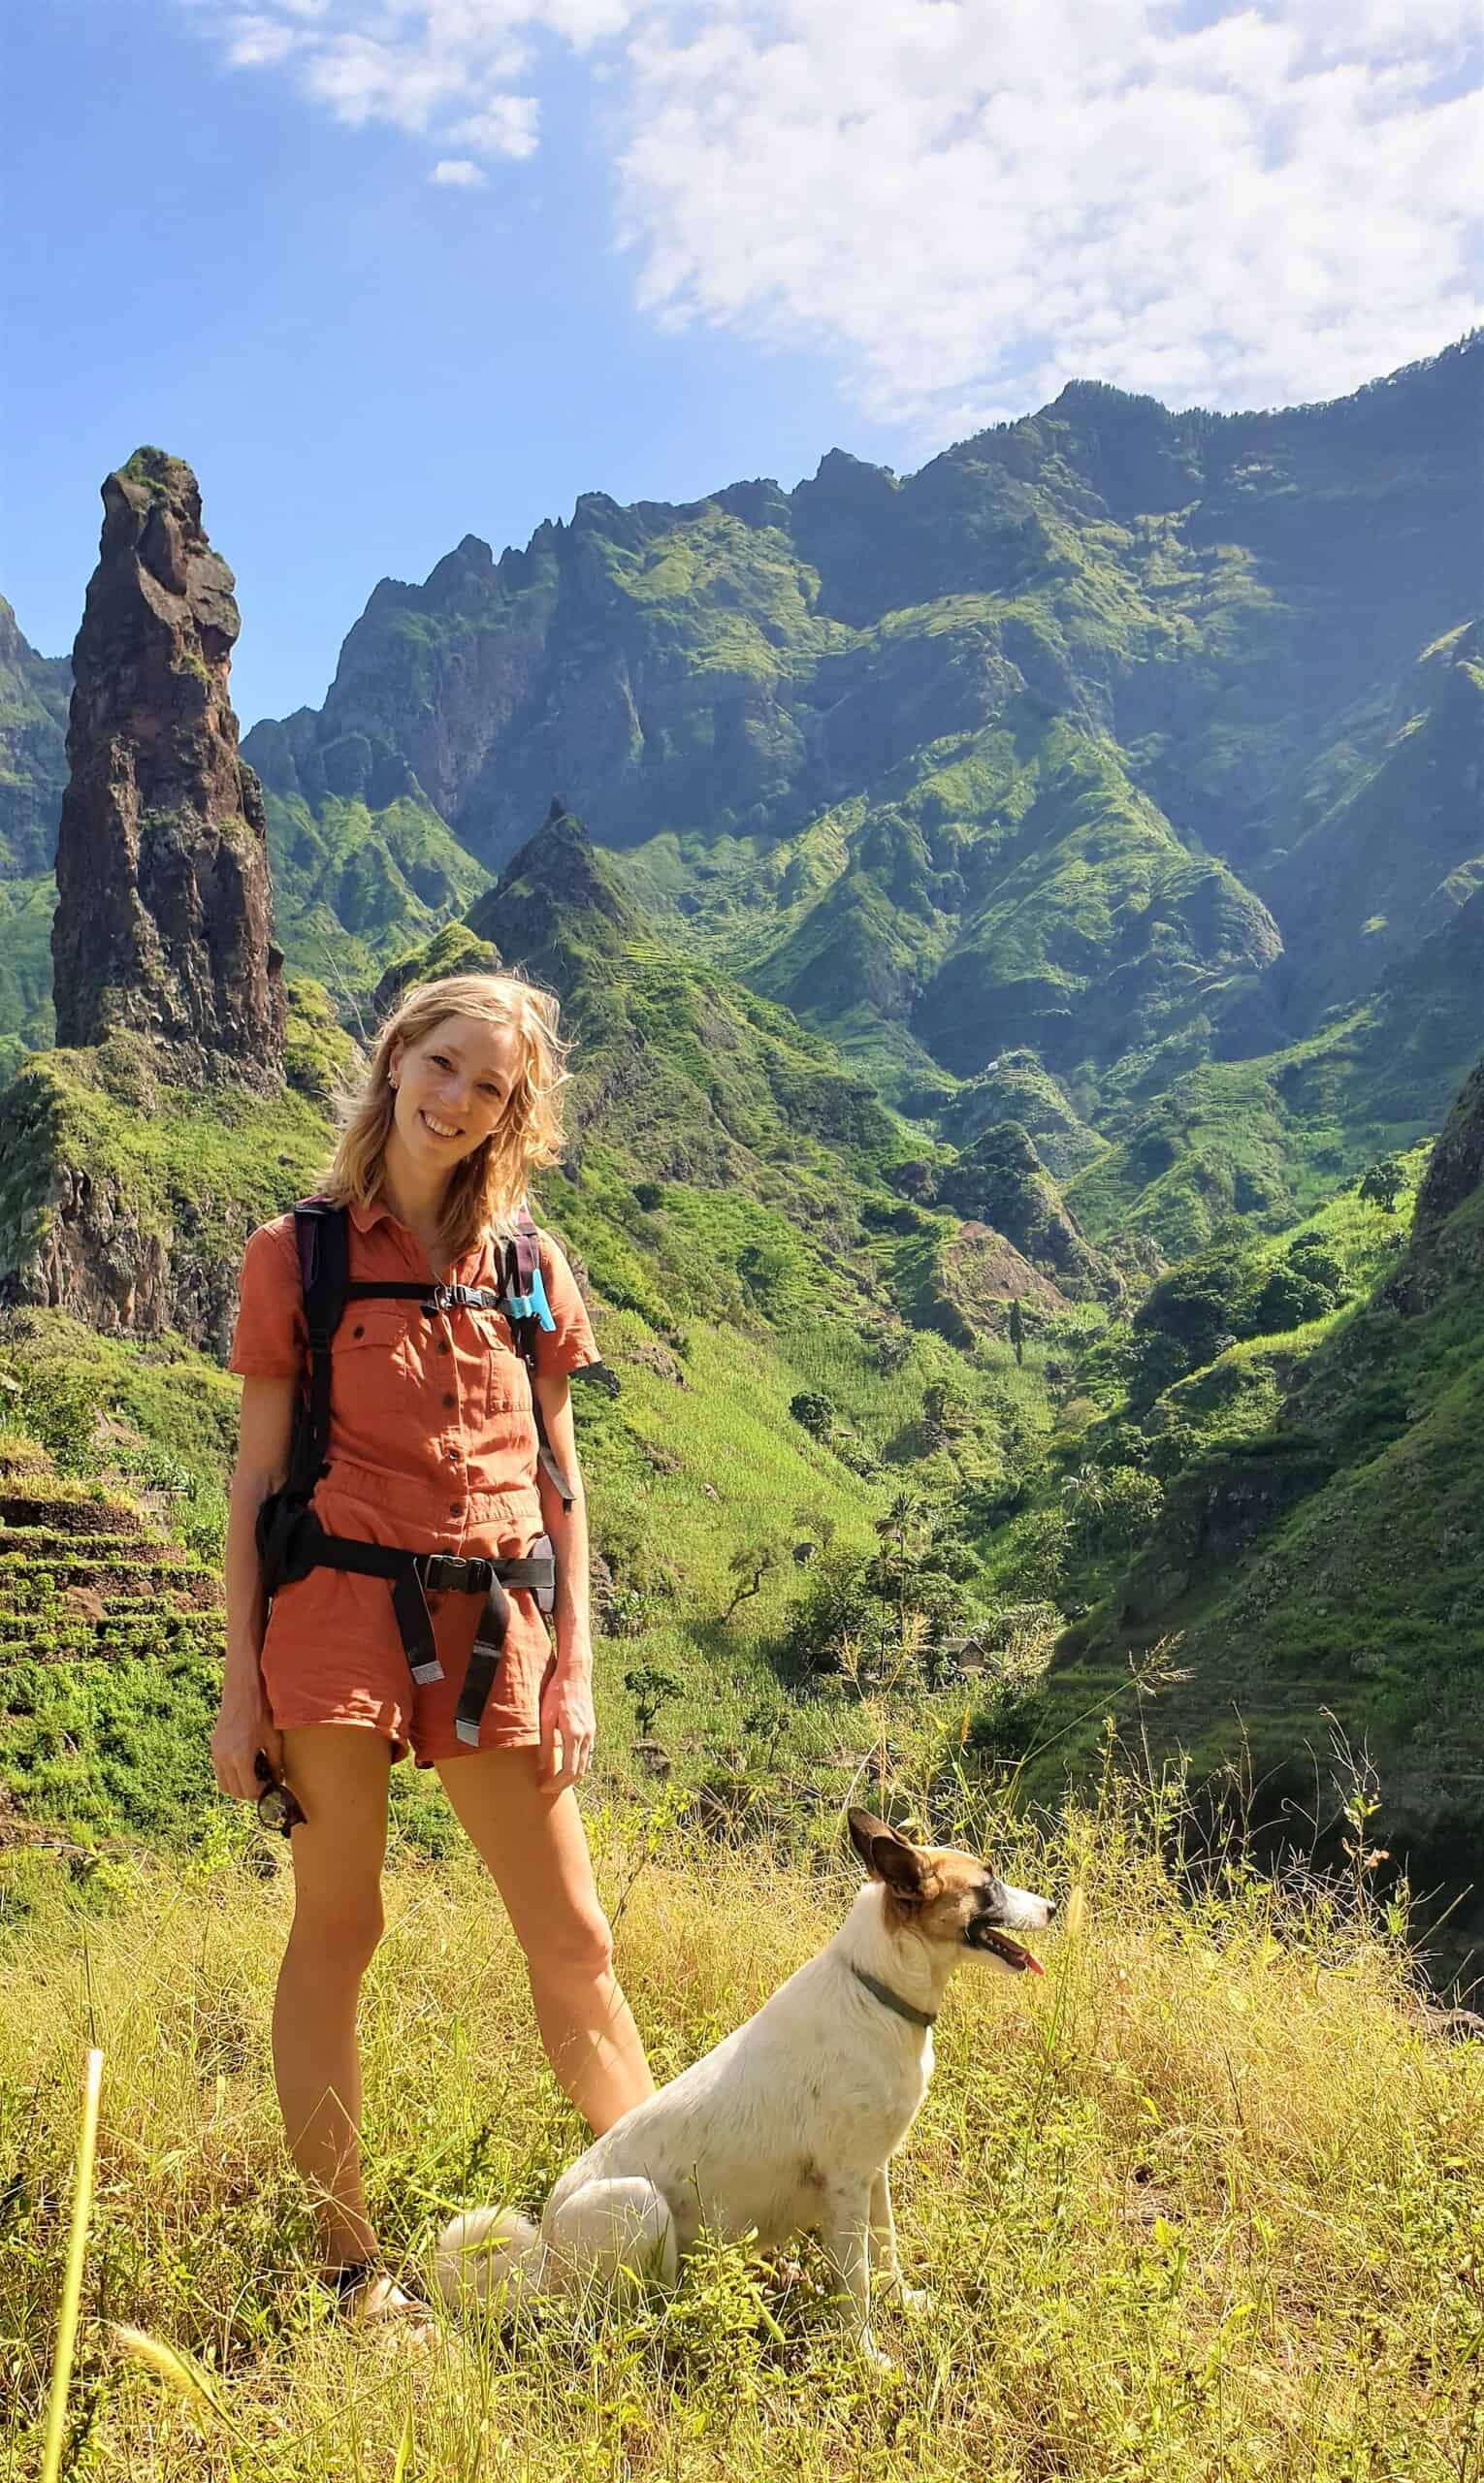 hiking in santo antao